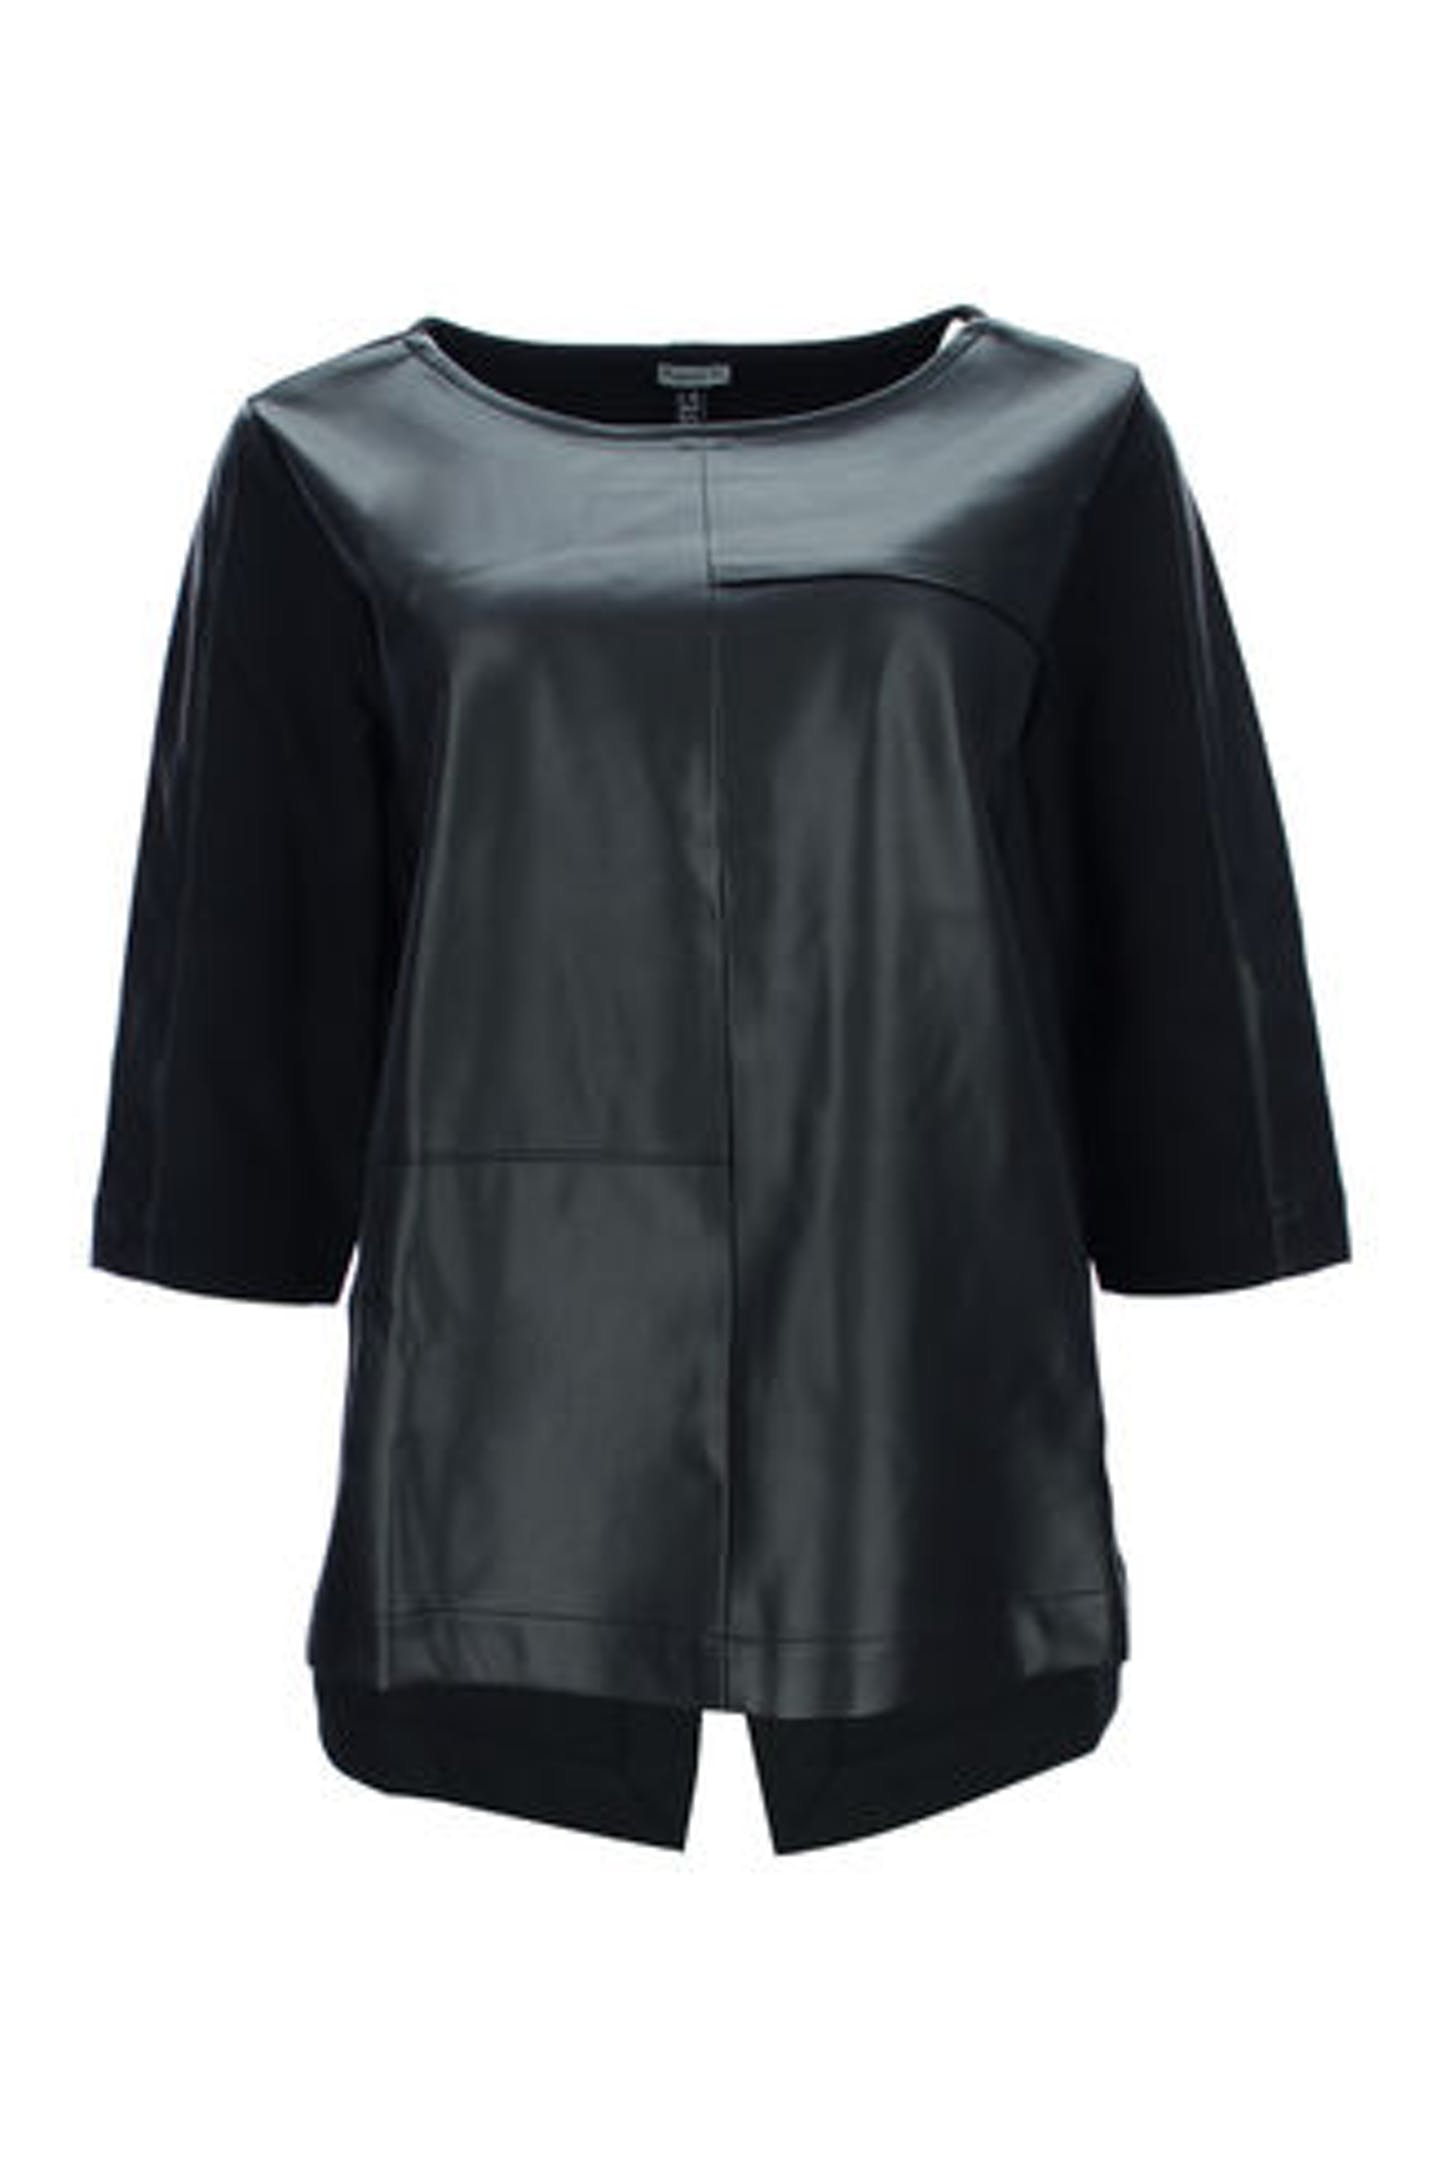 Veggie Leather Bluse